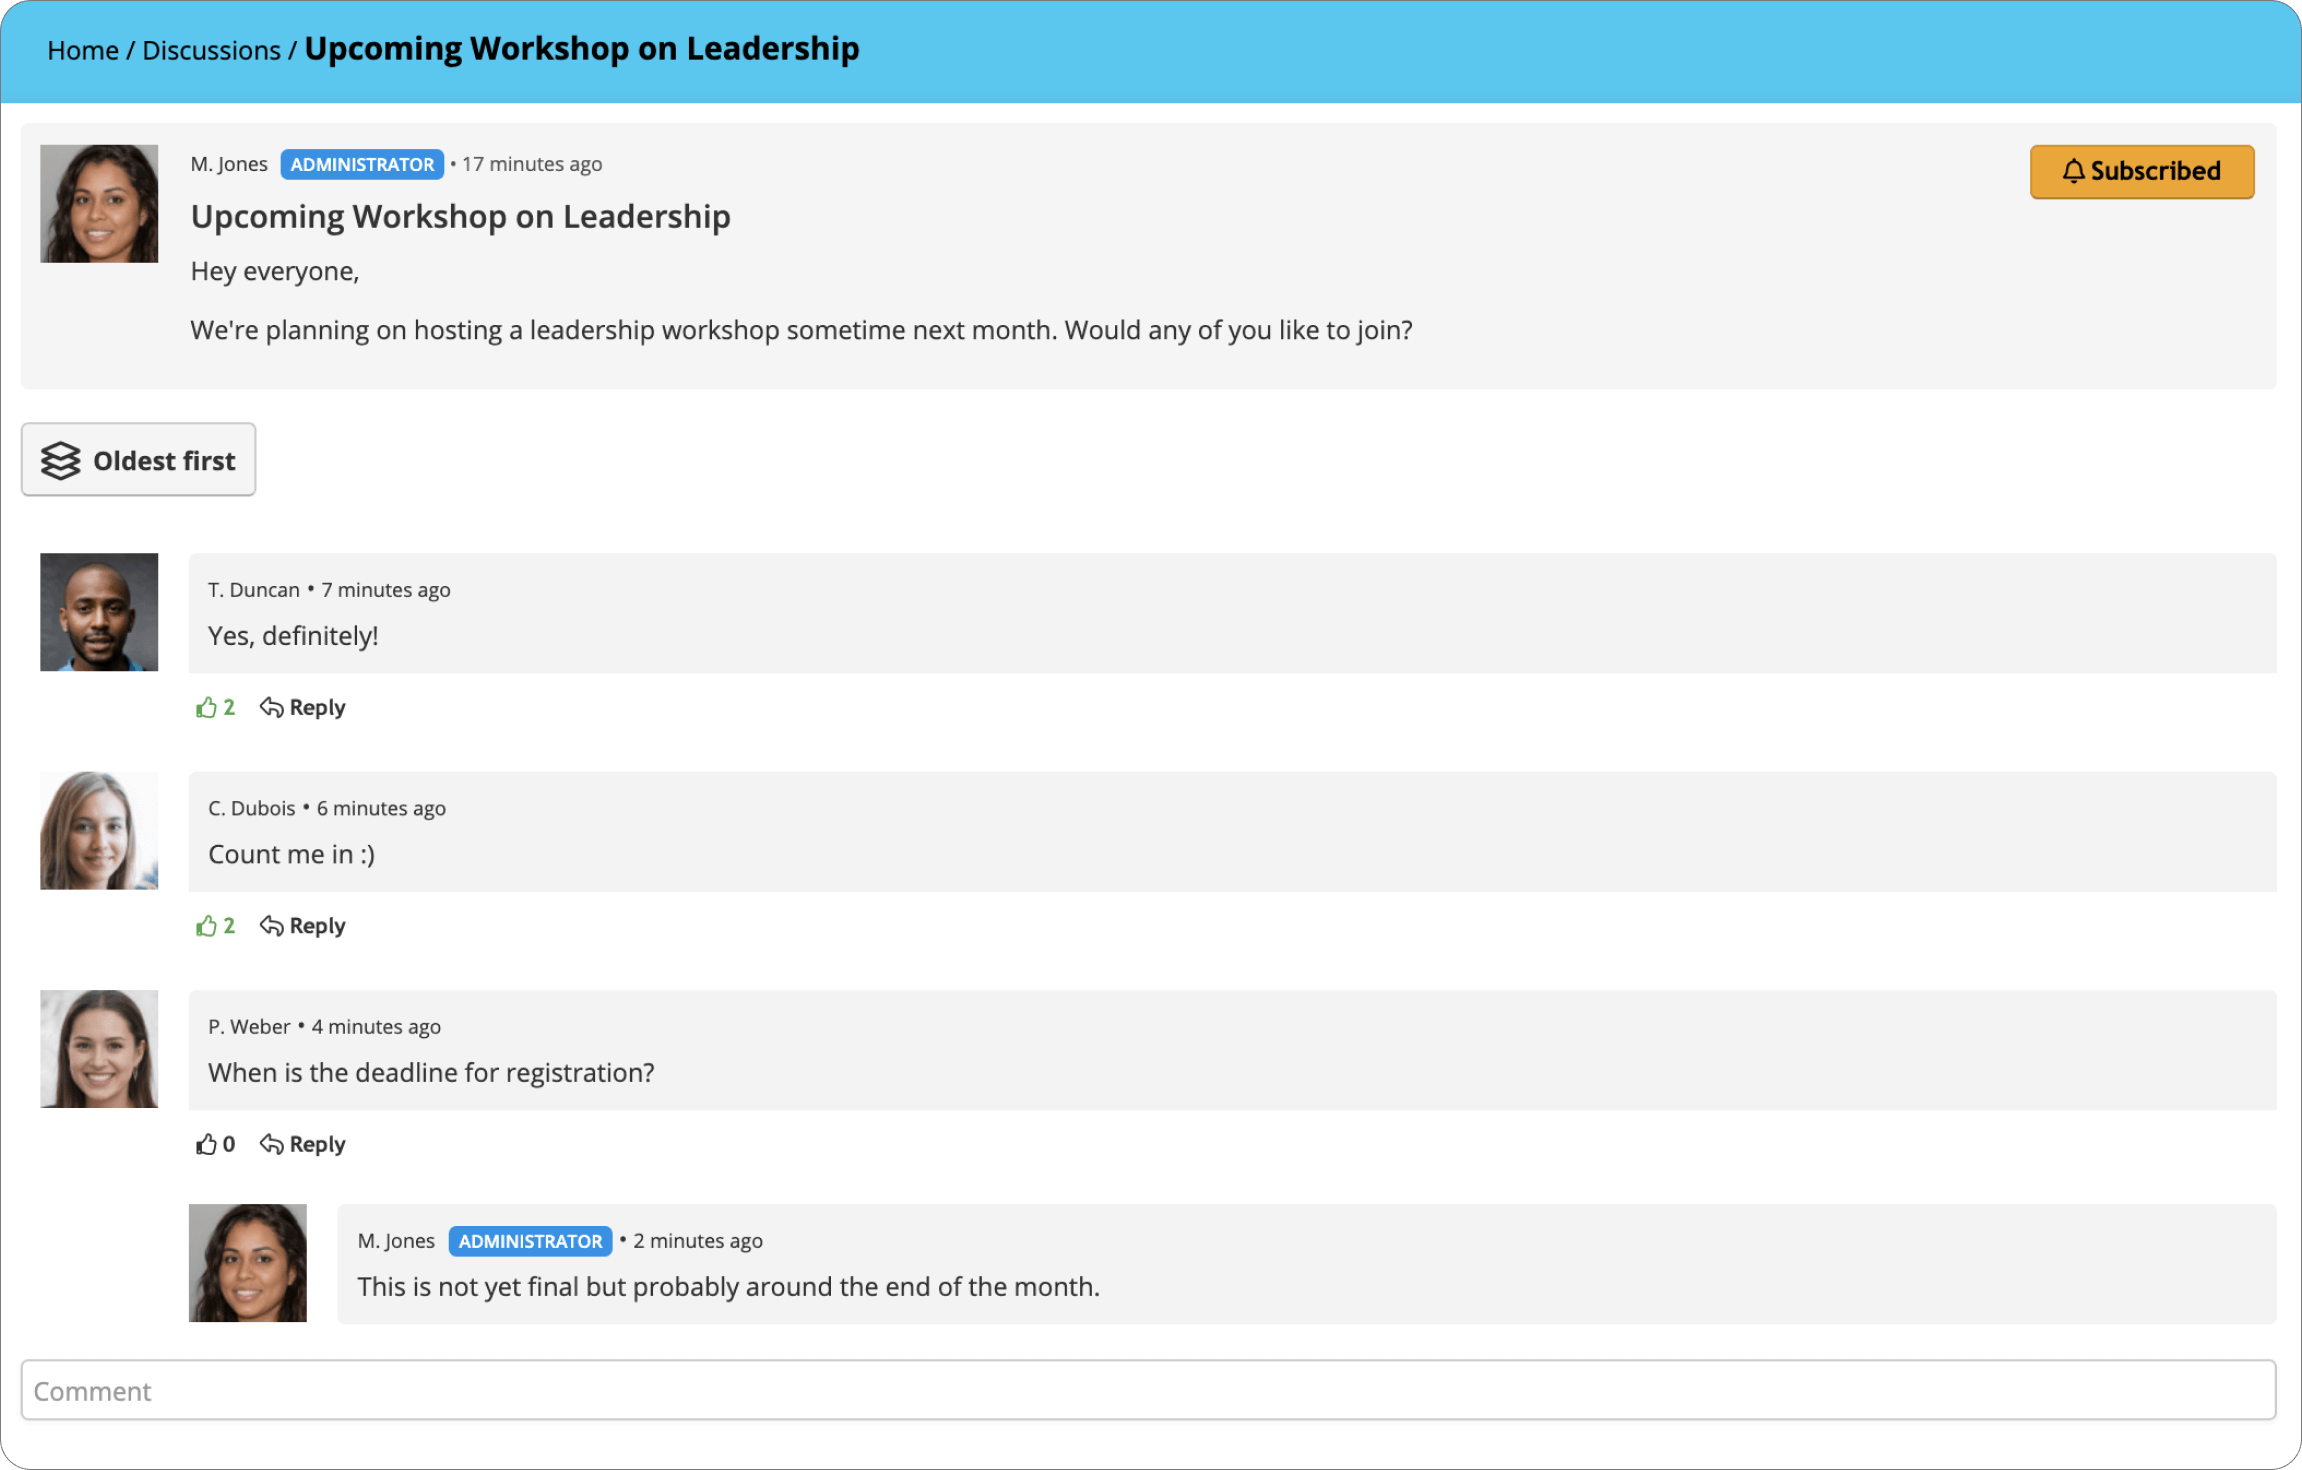 TalentLMS Spring 2021 Update - Subscribe to Discussions